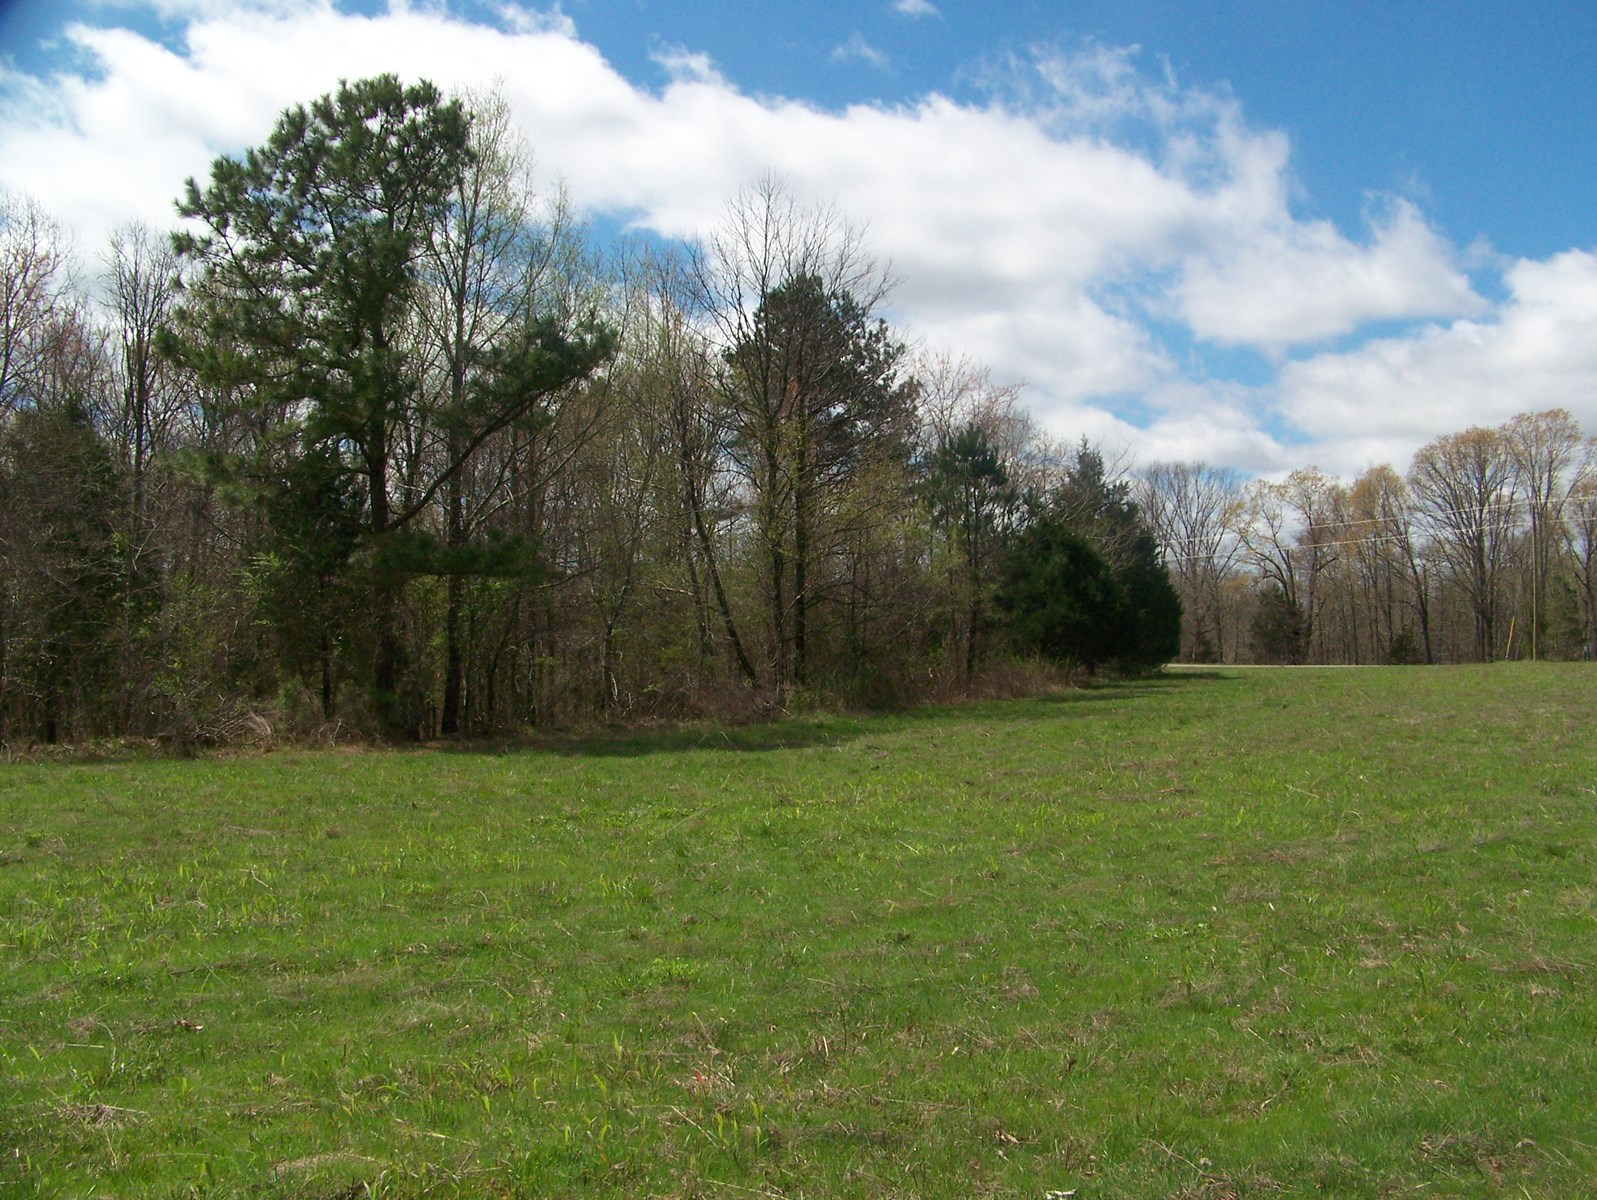 LG ACREAGE FOR SALE IN TN, HUNTING, PASTURE, WOODS